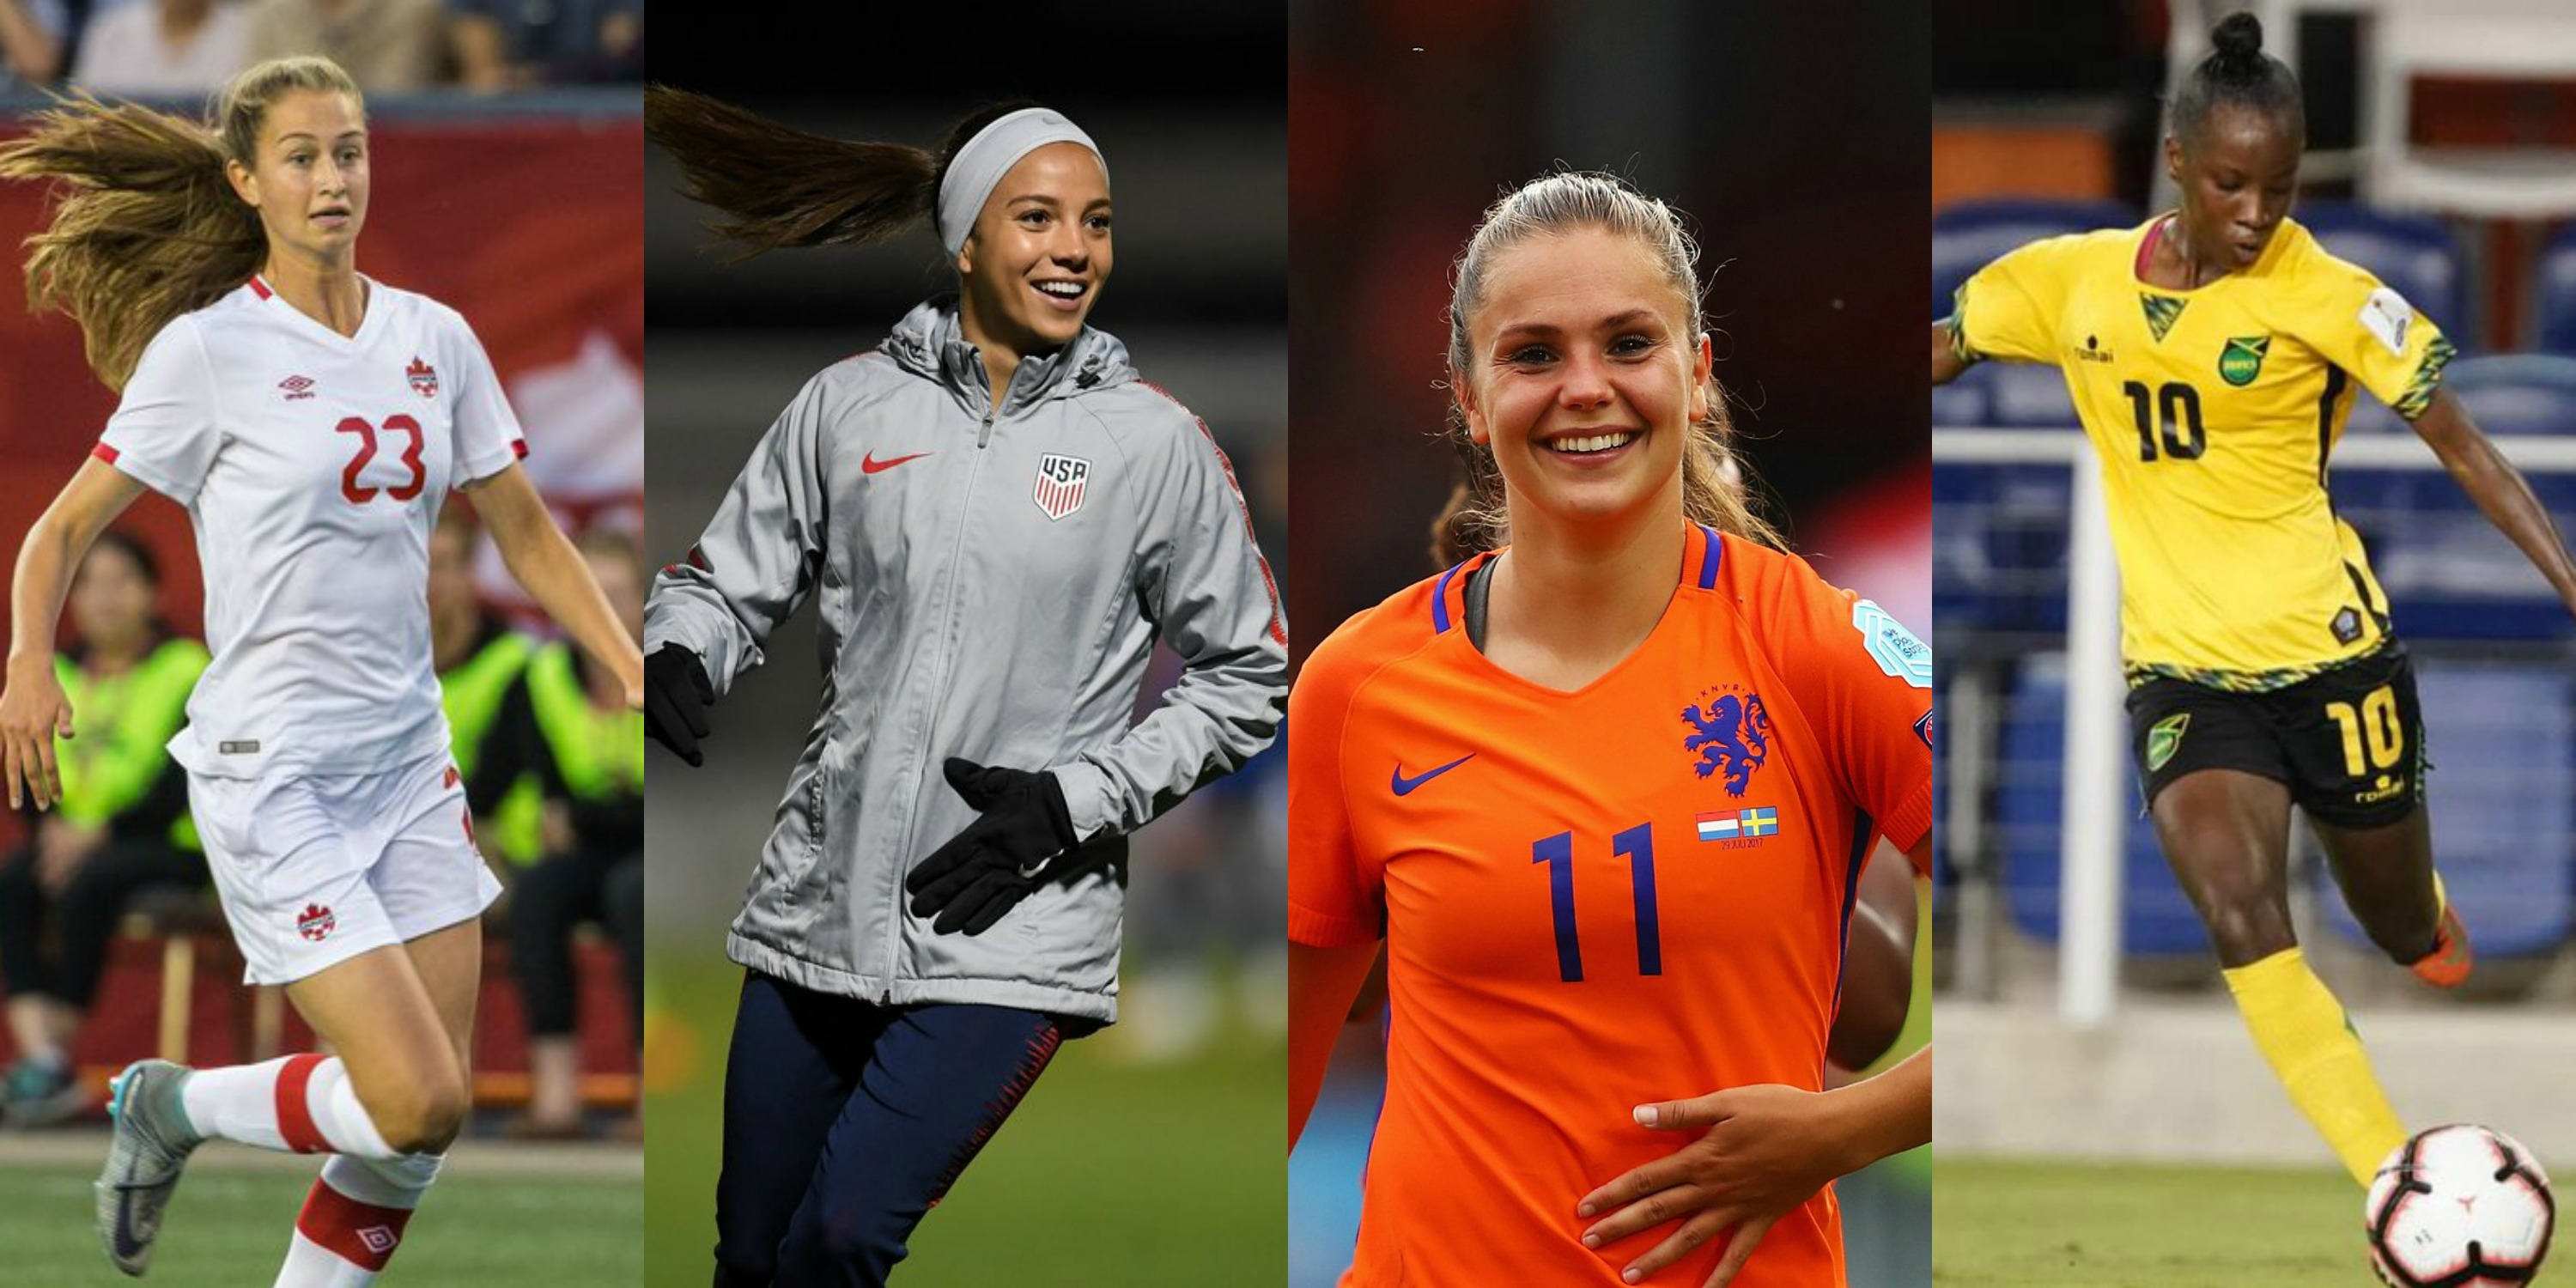 Best Futbol Players 2019 18 Women's World Cup Players You'll Fall In Love With In 2019